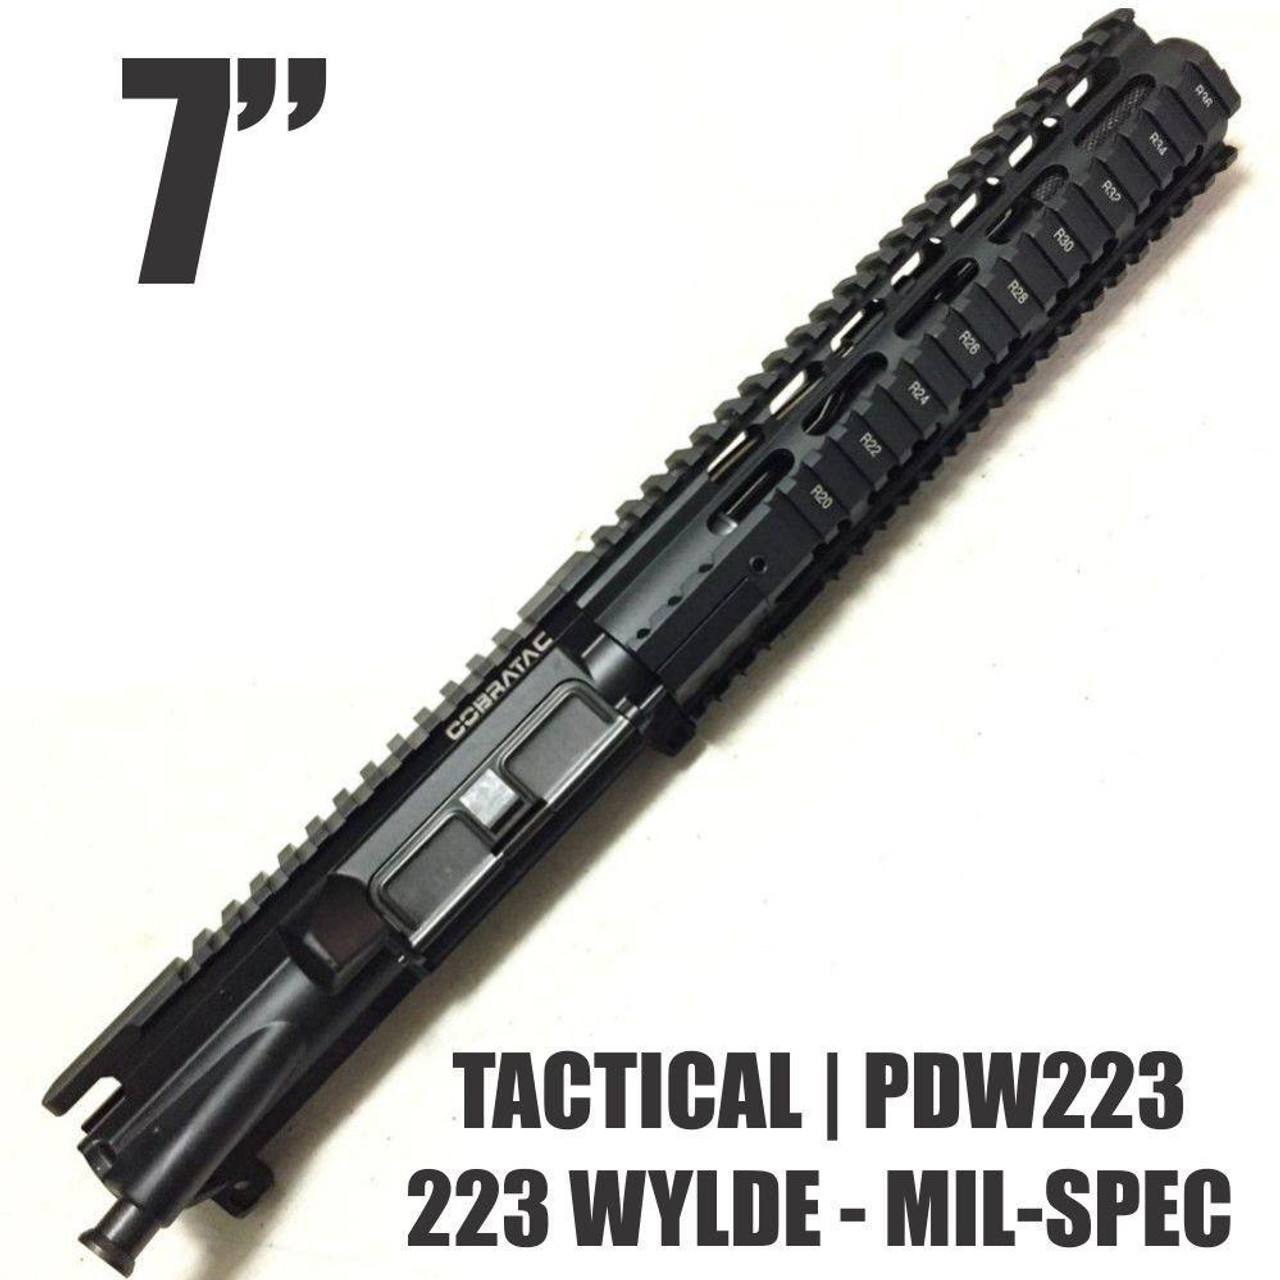 7 TACTICAL PDW-223 | 223 WYLDE